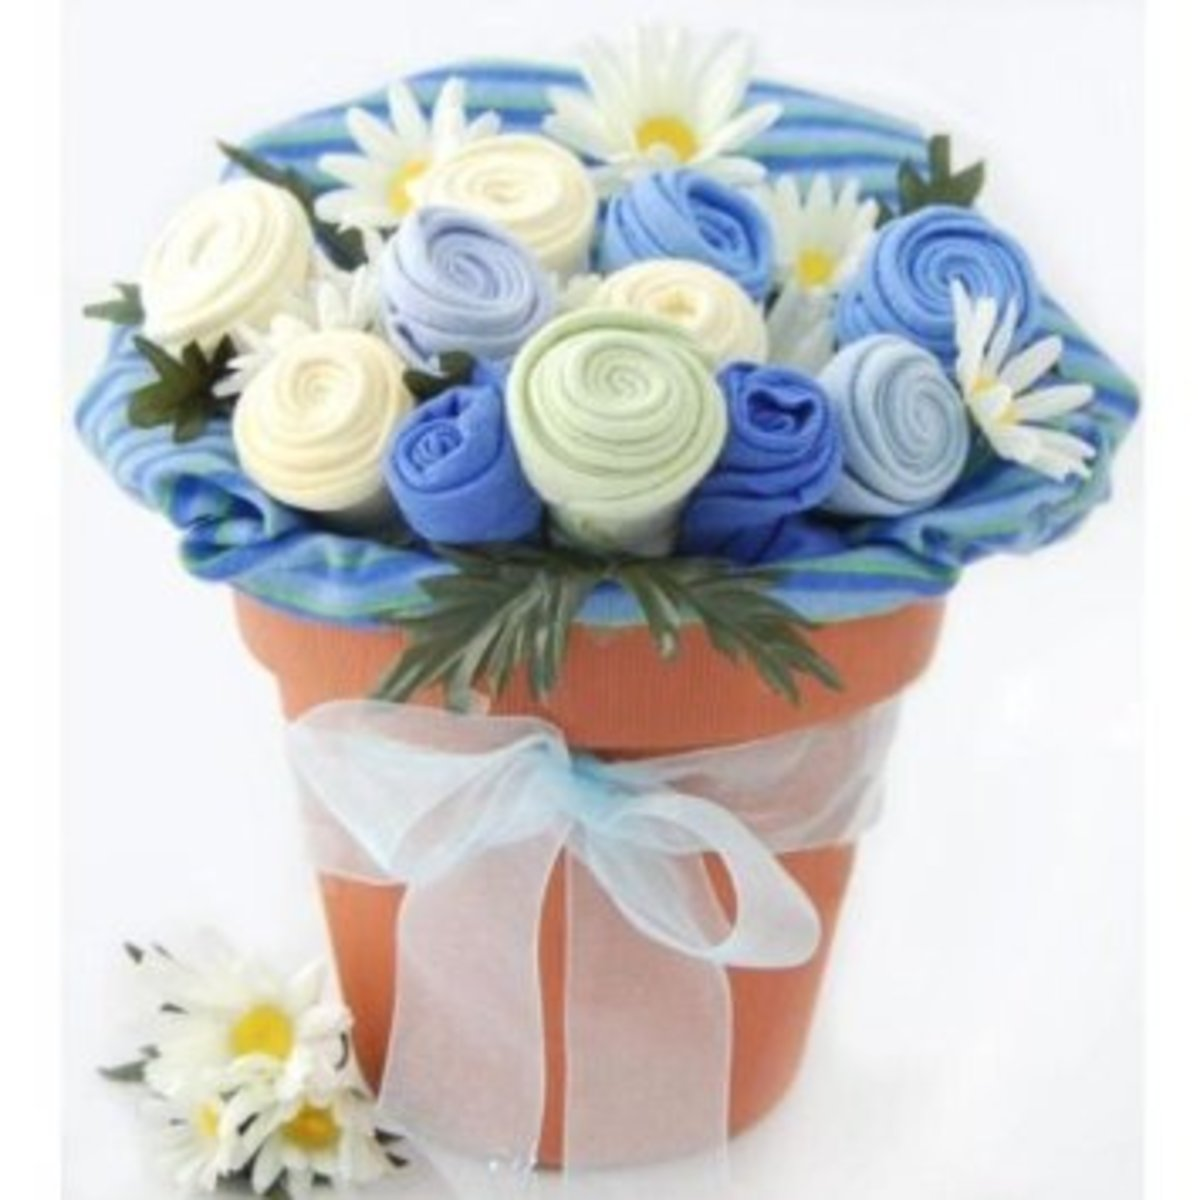 Baby Blossom Clothing Bouquet Gift. Boy 3-6 Months - Baby Shower Gift Basket